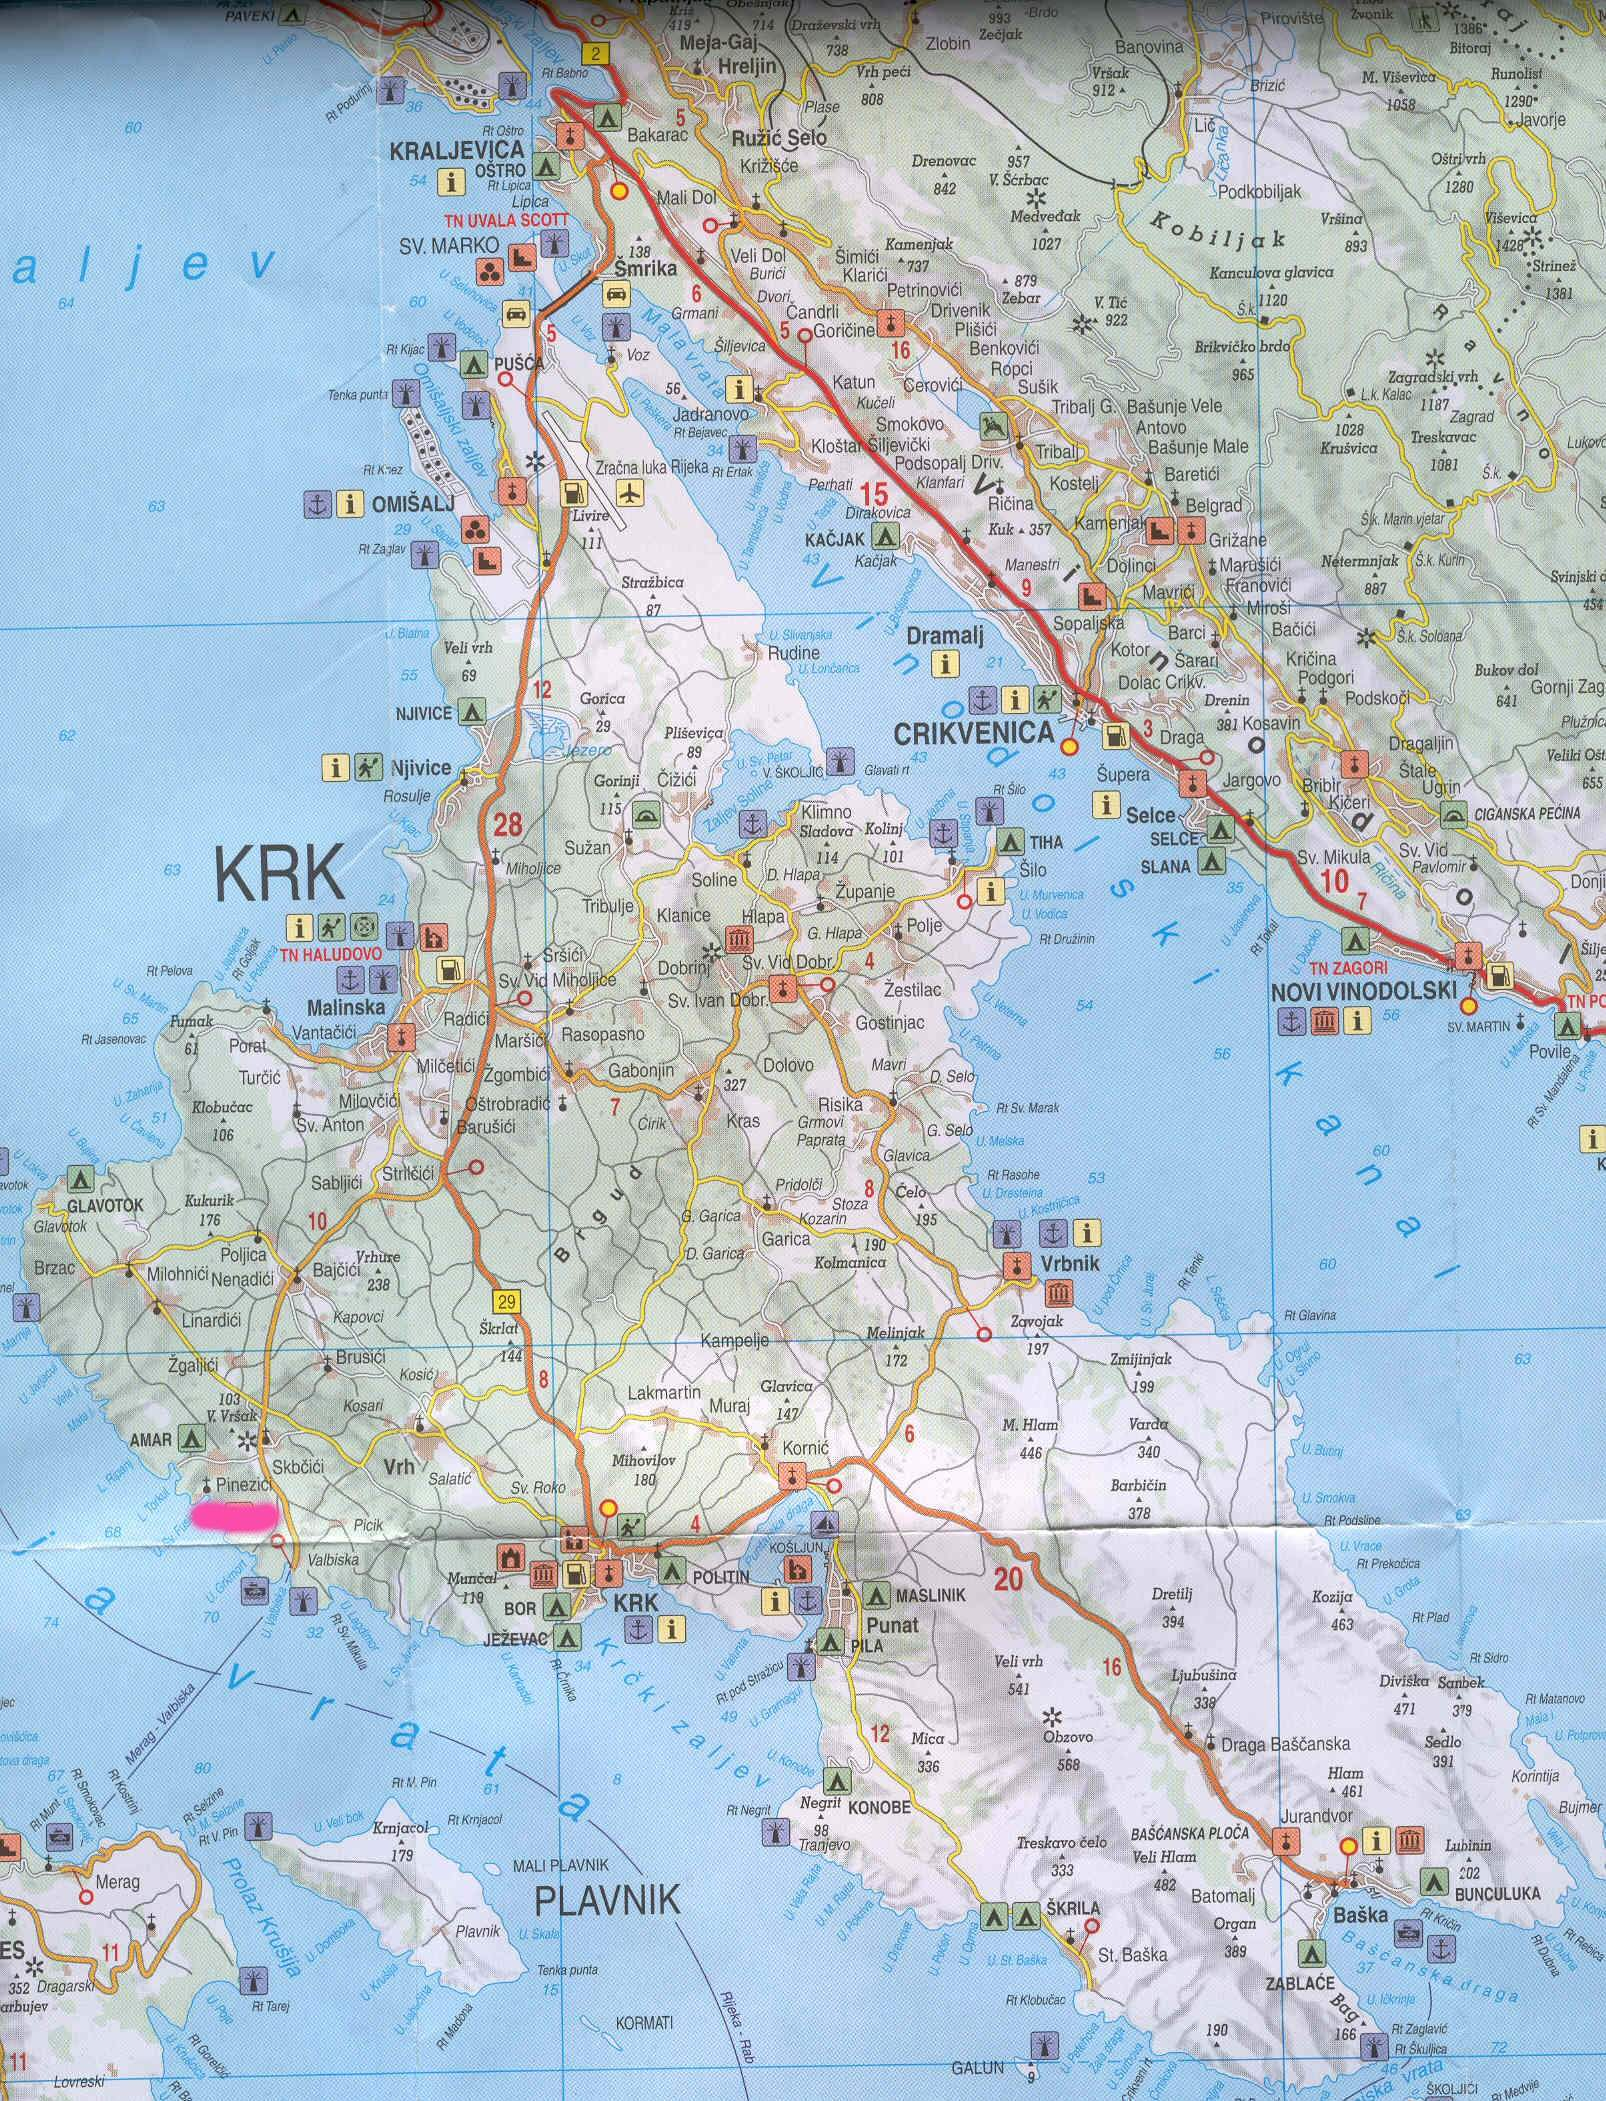 Cartina Krk.Large Krk Maps For Free Download And Print High Resolution And